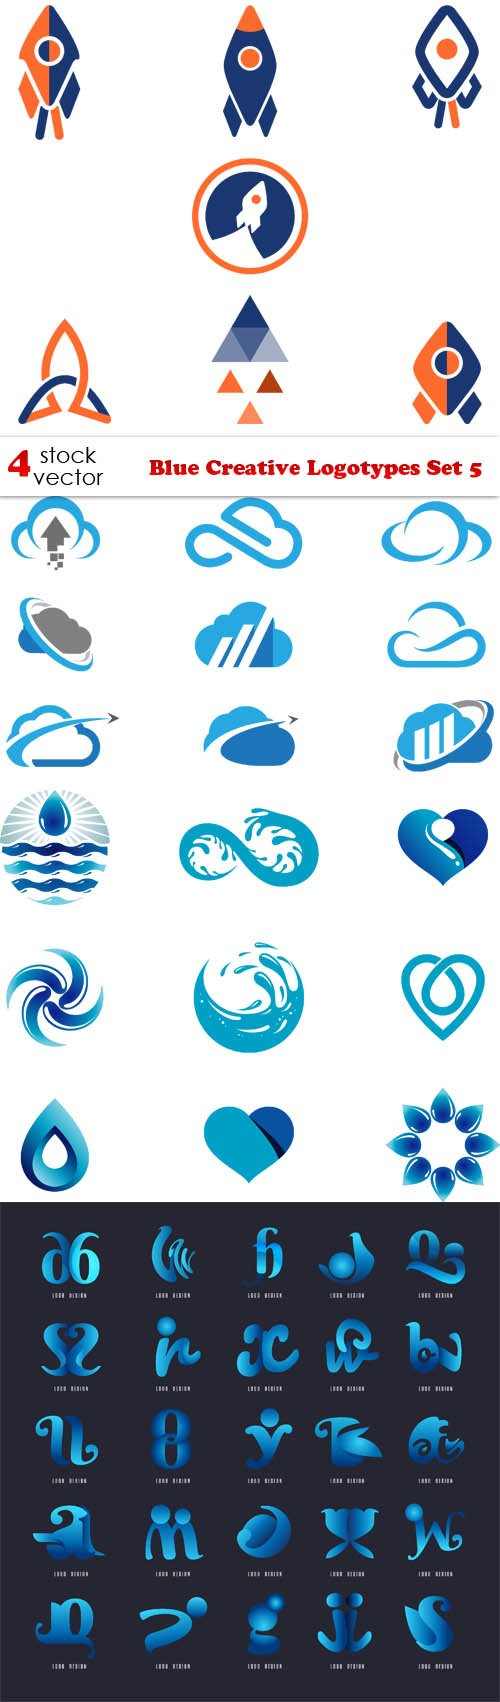 Vectors - Blue Creative Logotypes Set 5